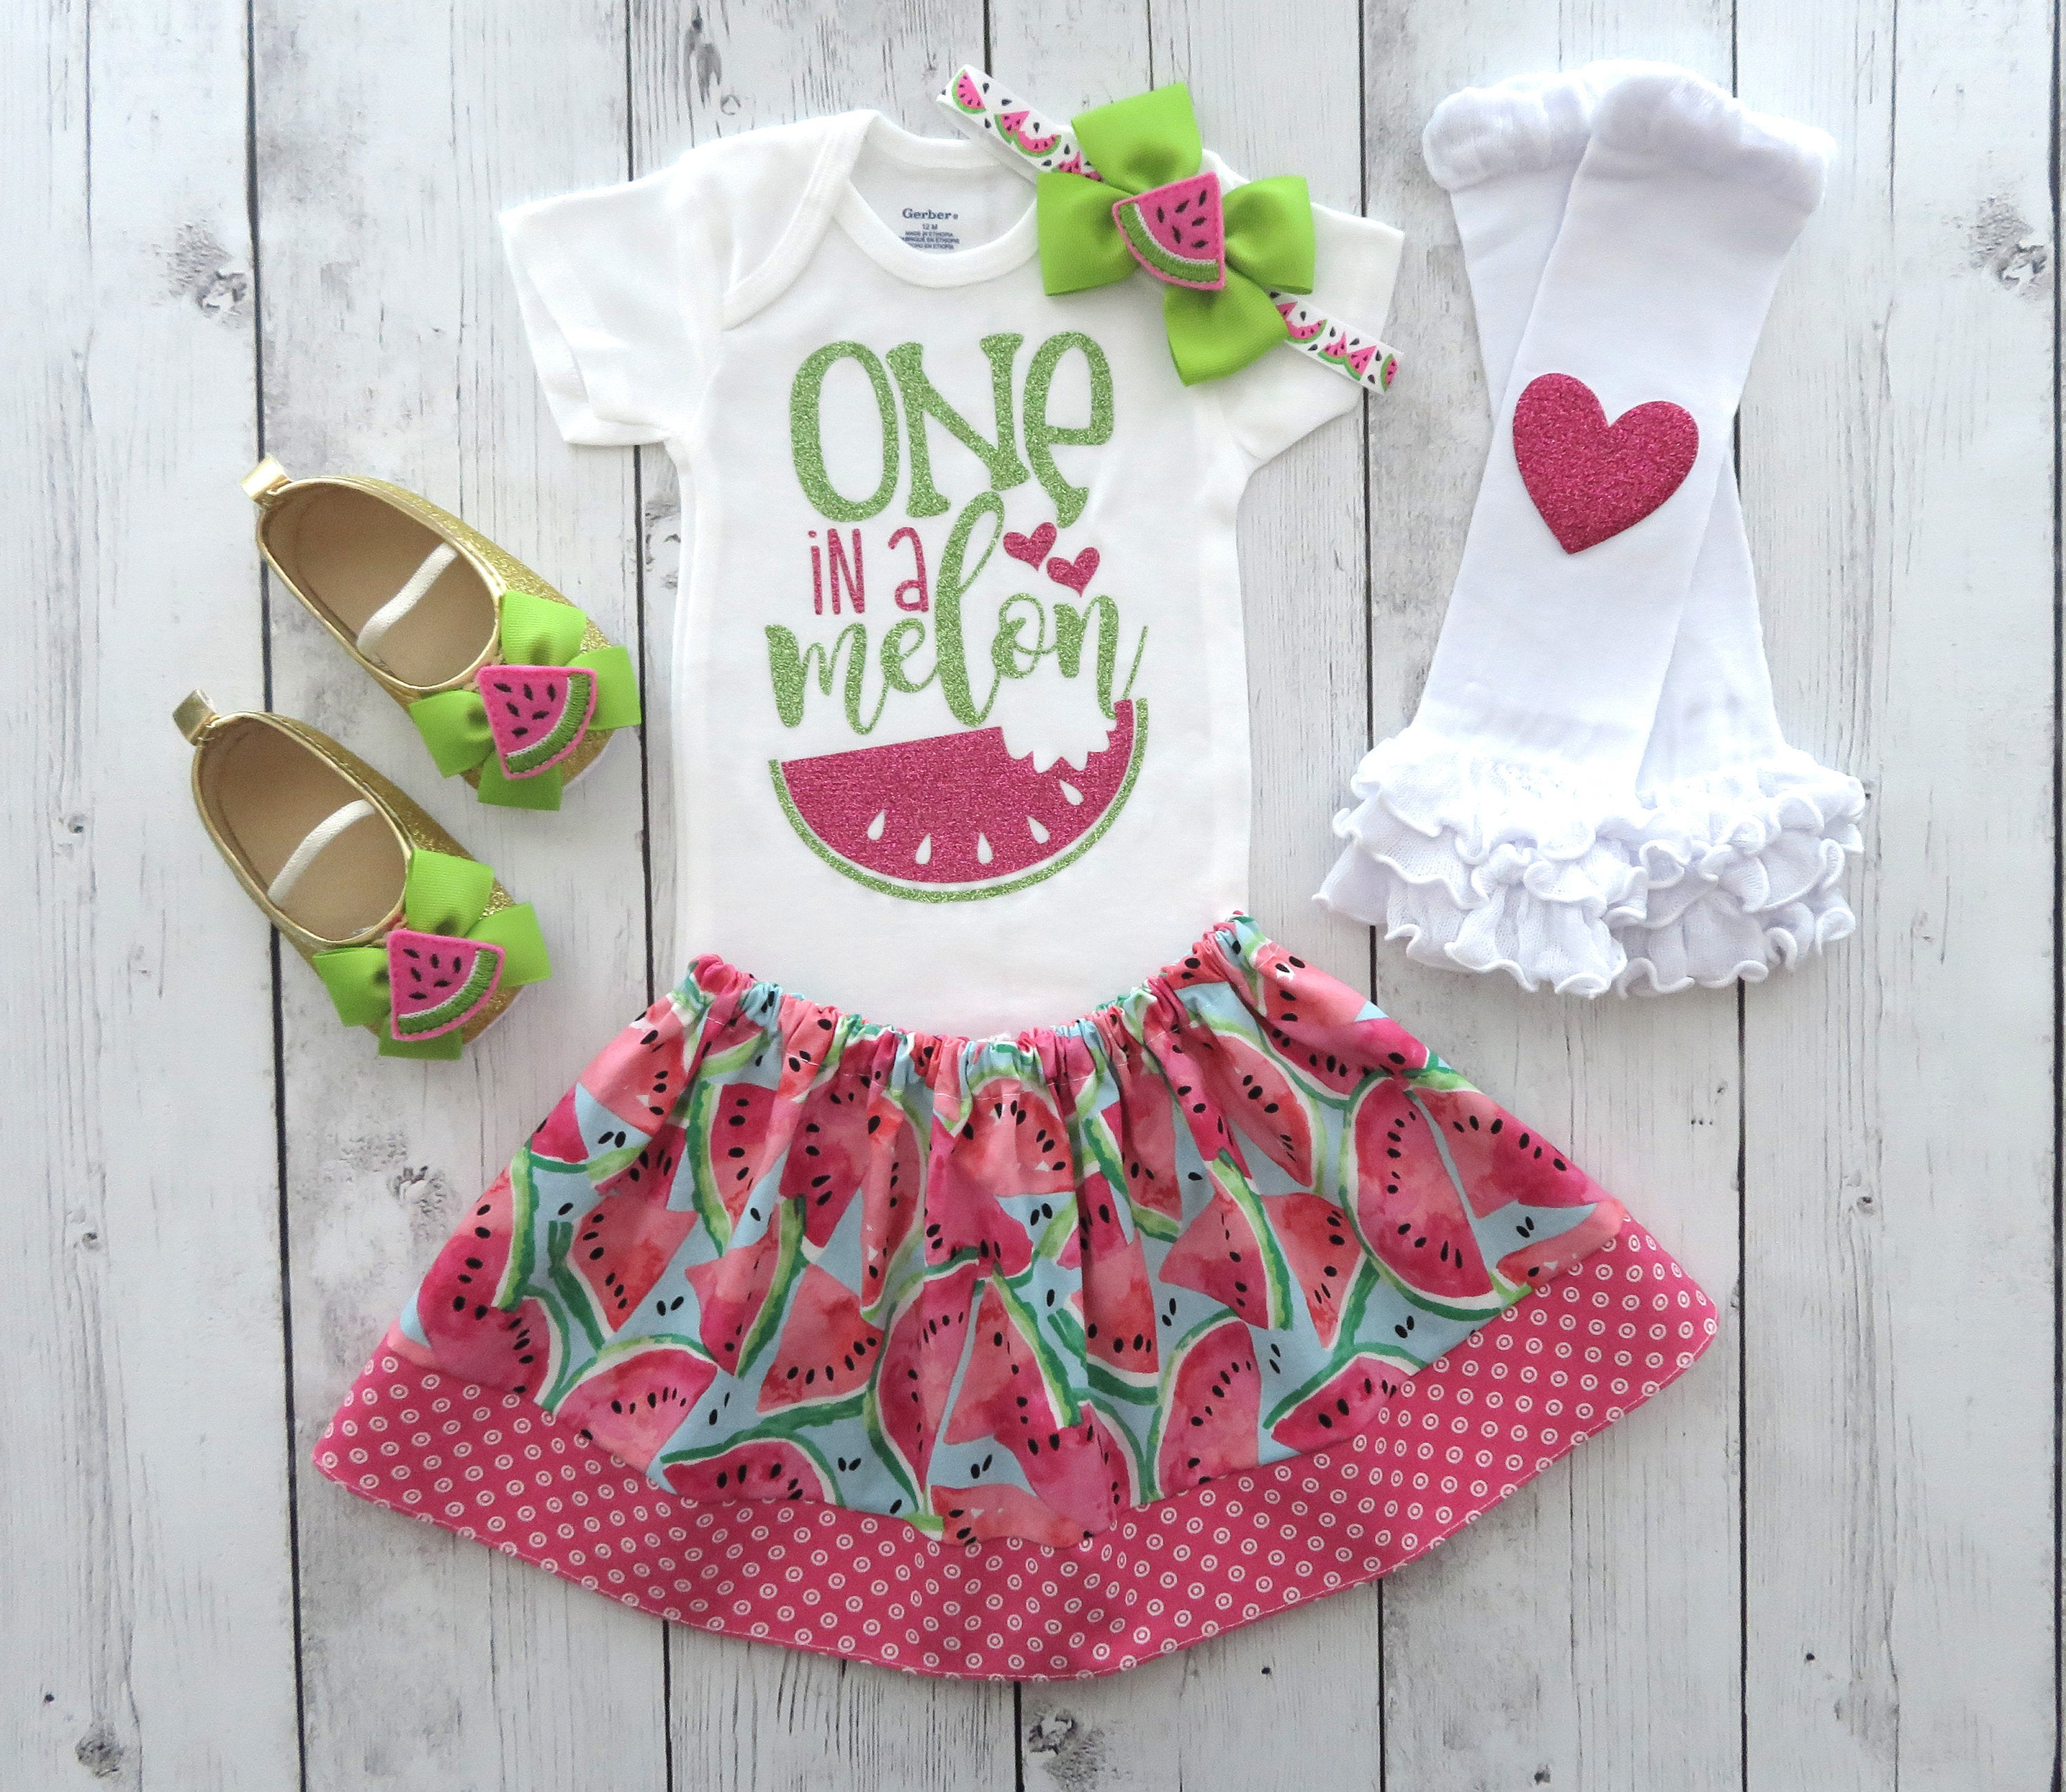 One in a Melon First Birthday Outfit - Watermelon 1st bday, first birthday outfit girl, watermelon outfit, 1st bday outfit, summer bday girl